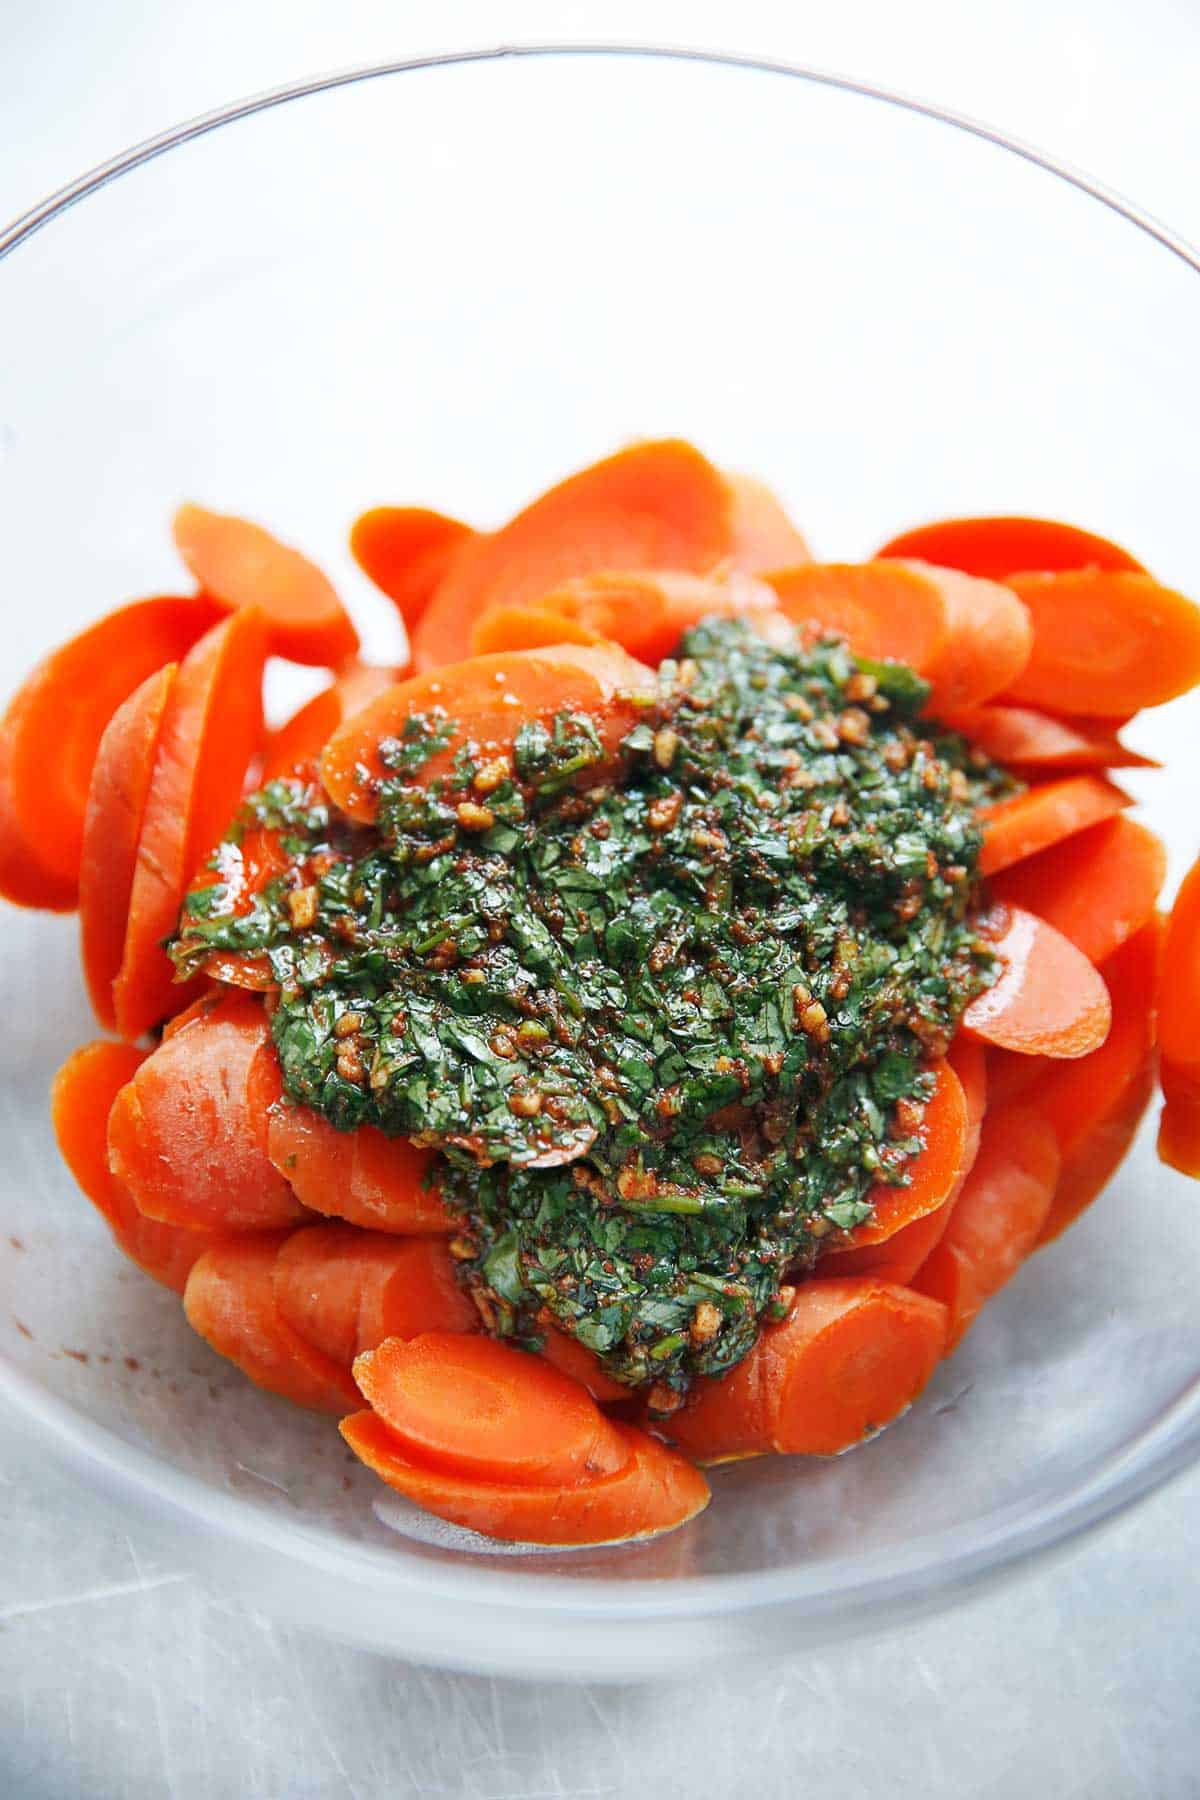 Moroccan Chermoula Sauce Over Steamed Carrots